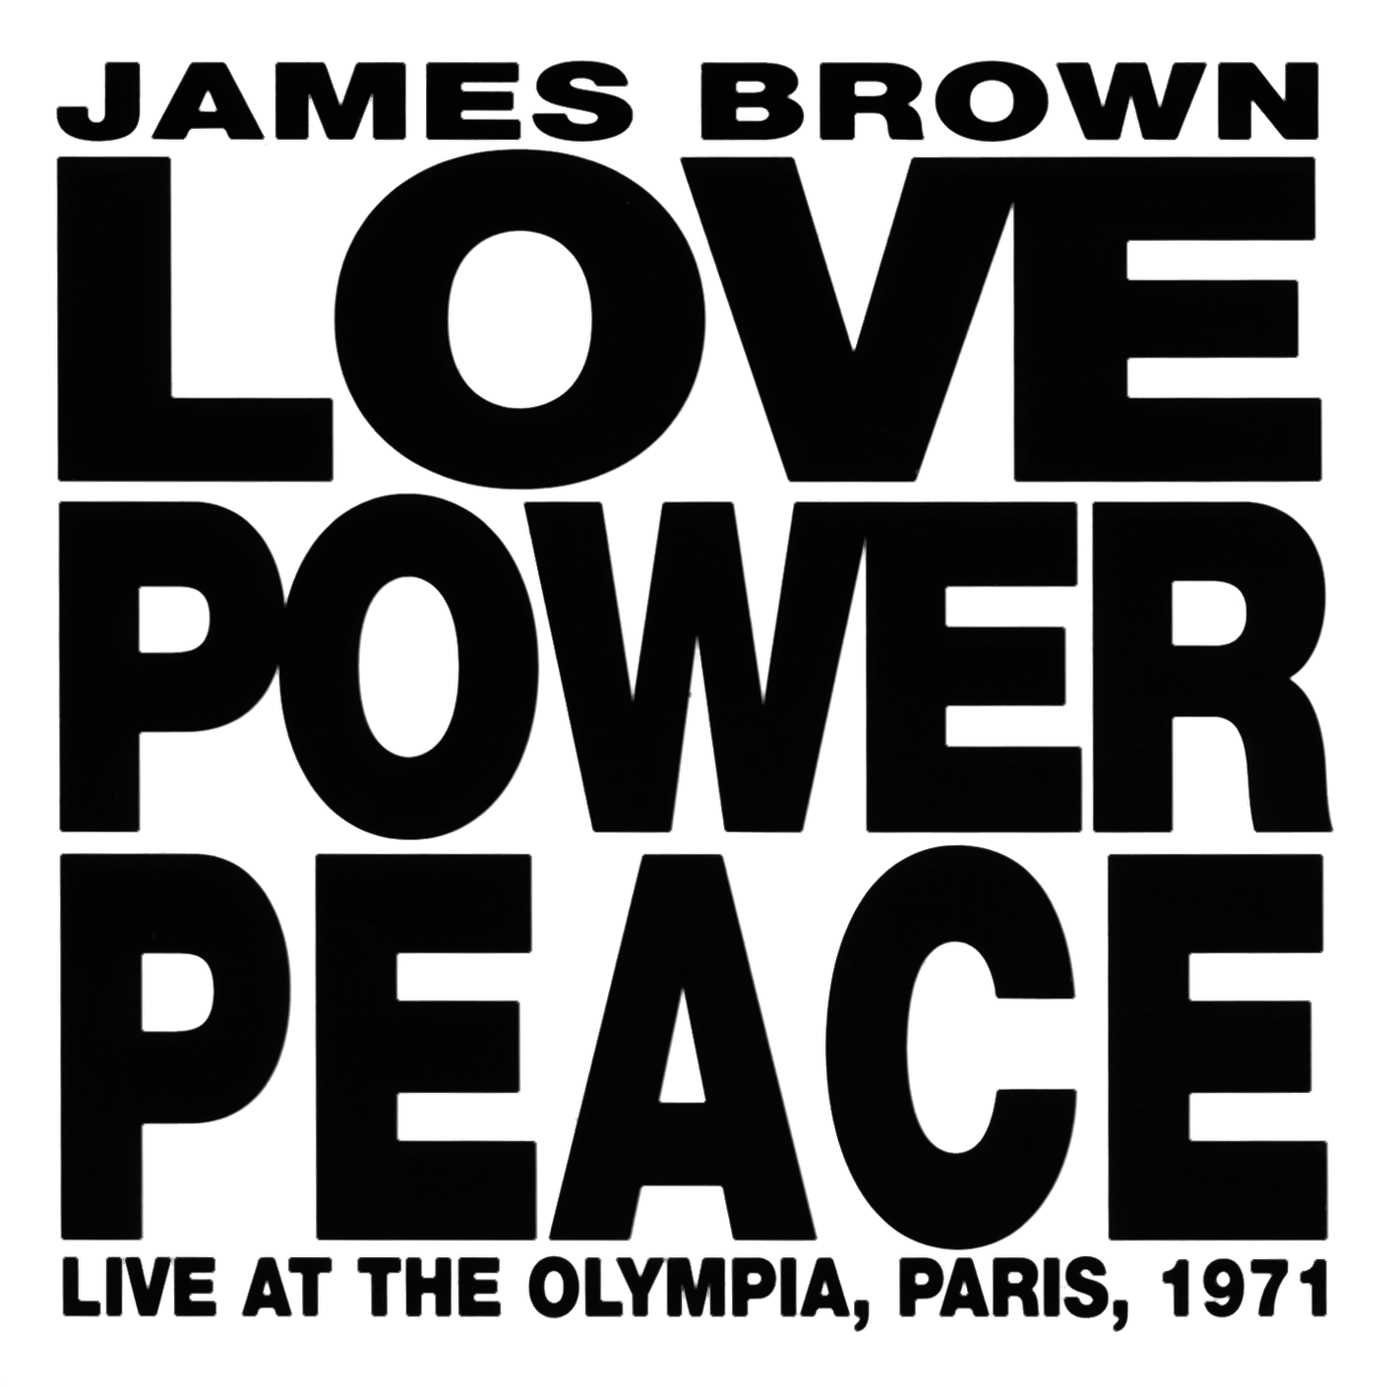 Love Power Peace: Live at the Olympia, Paris 1971 by CD